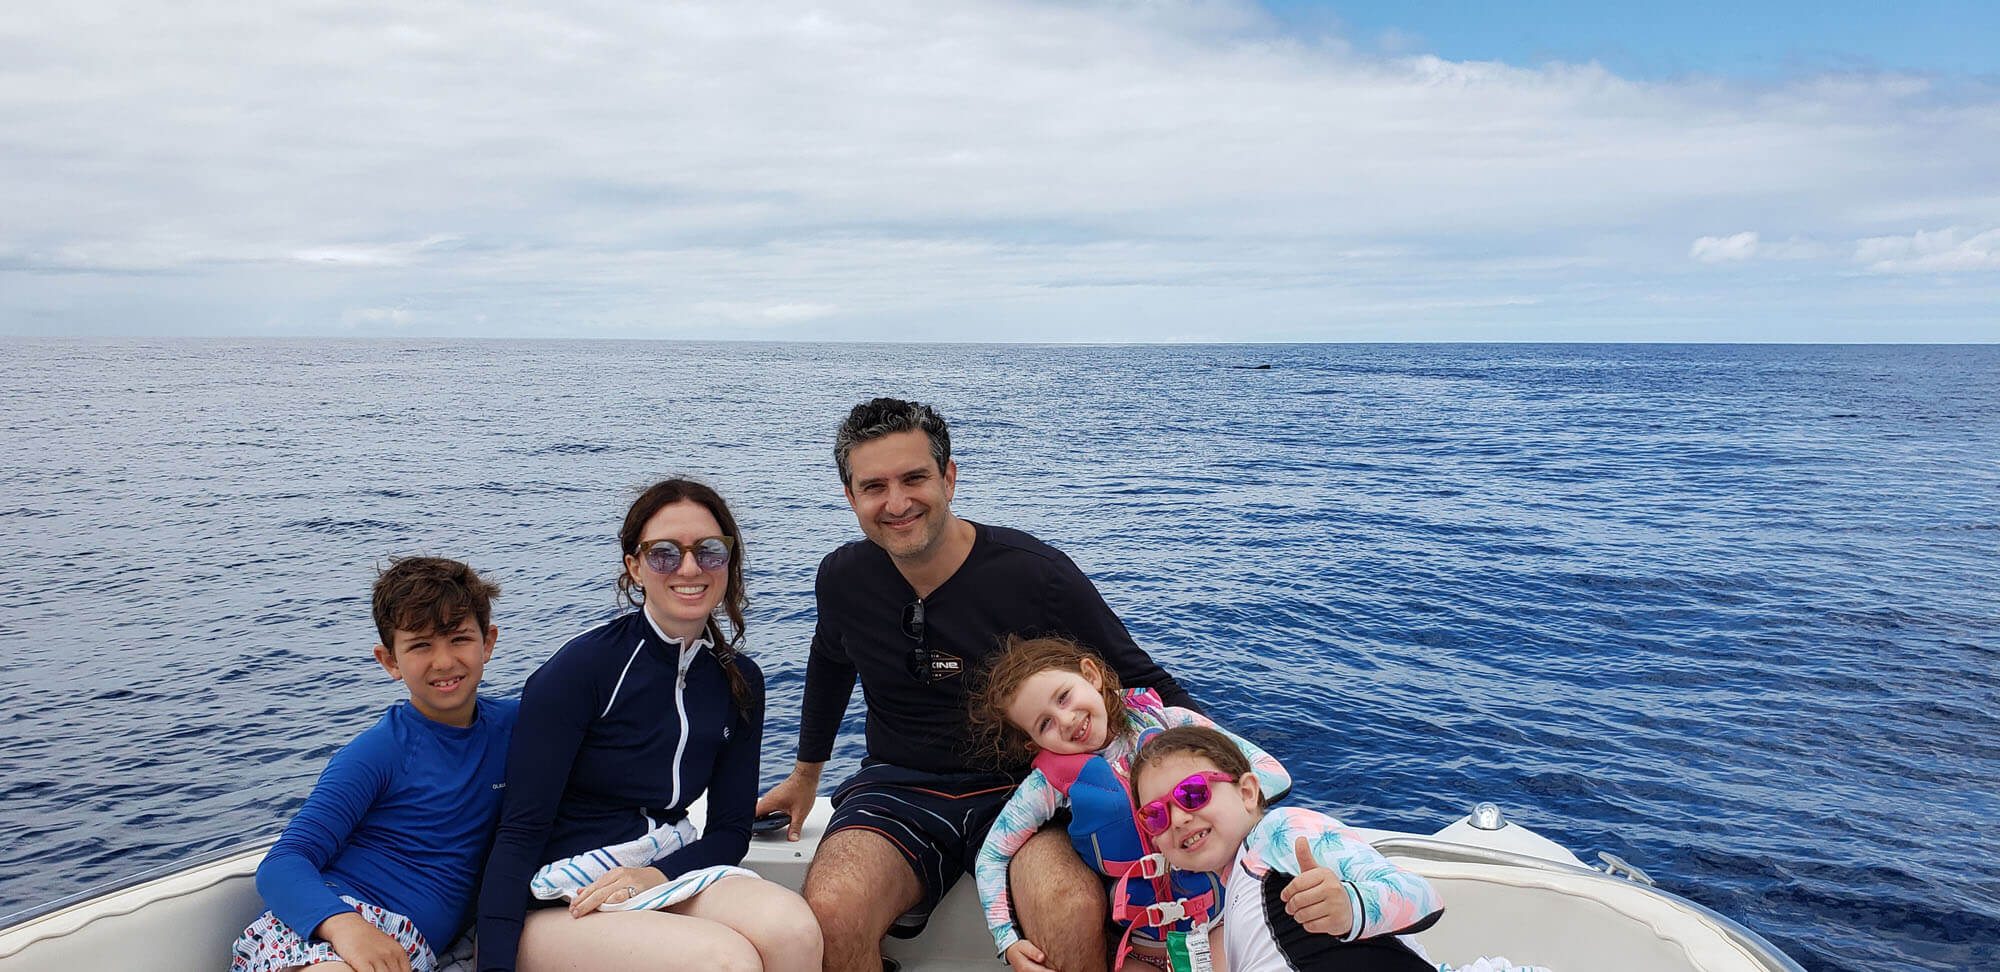 Family With a Whale in the Background